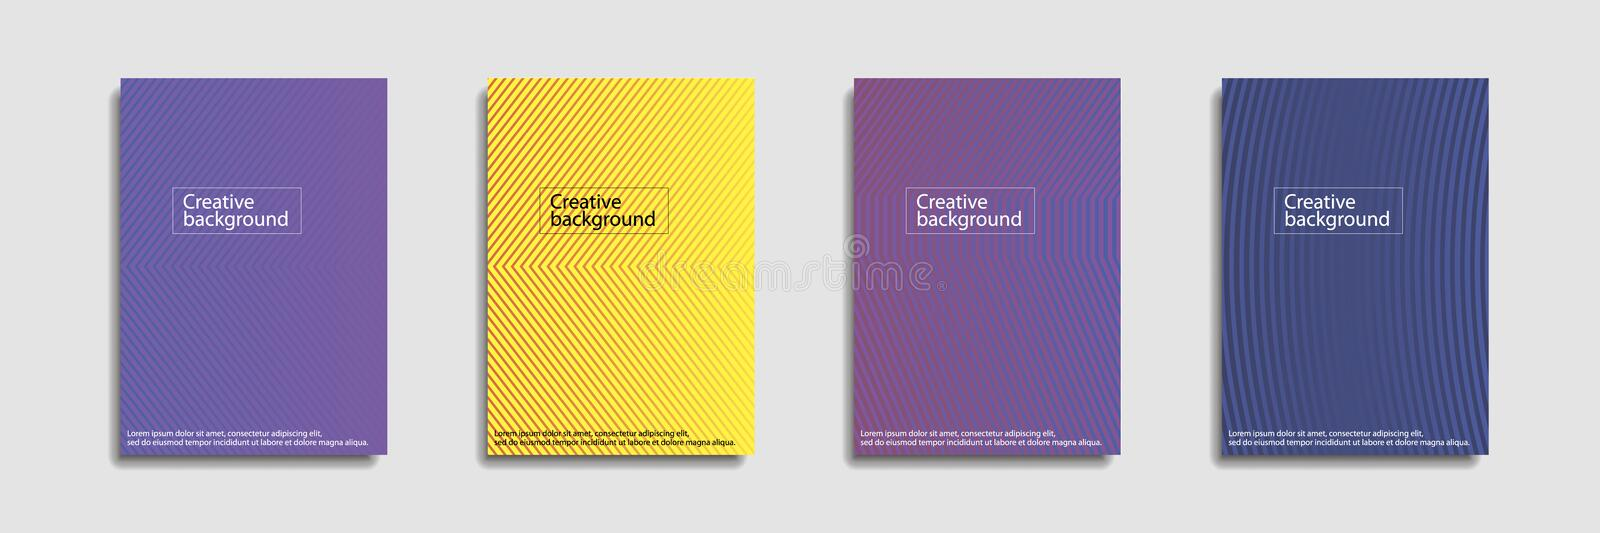 Minimal covers design. Colorful halftone gradients.background modern template design for web. Cool gradients. Future royalty free illustration